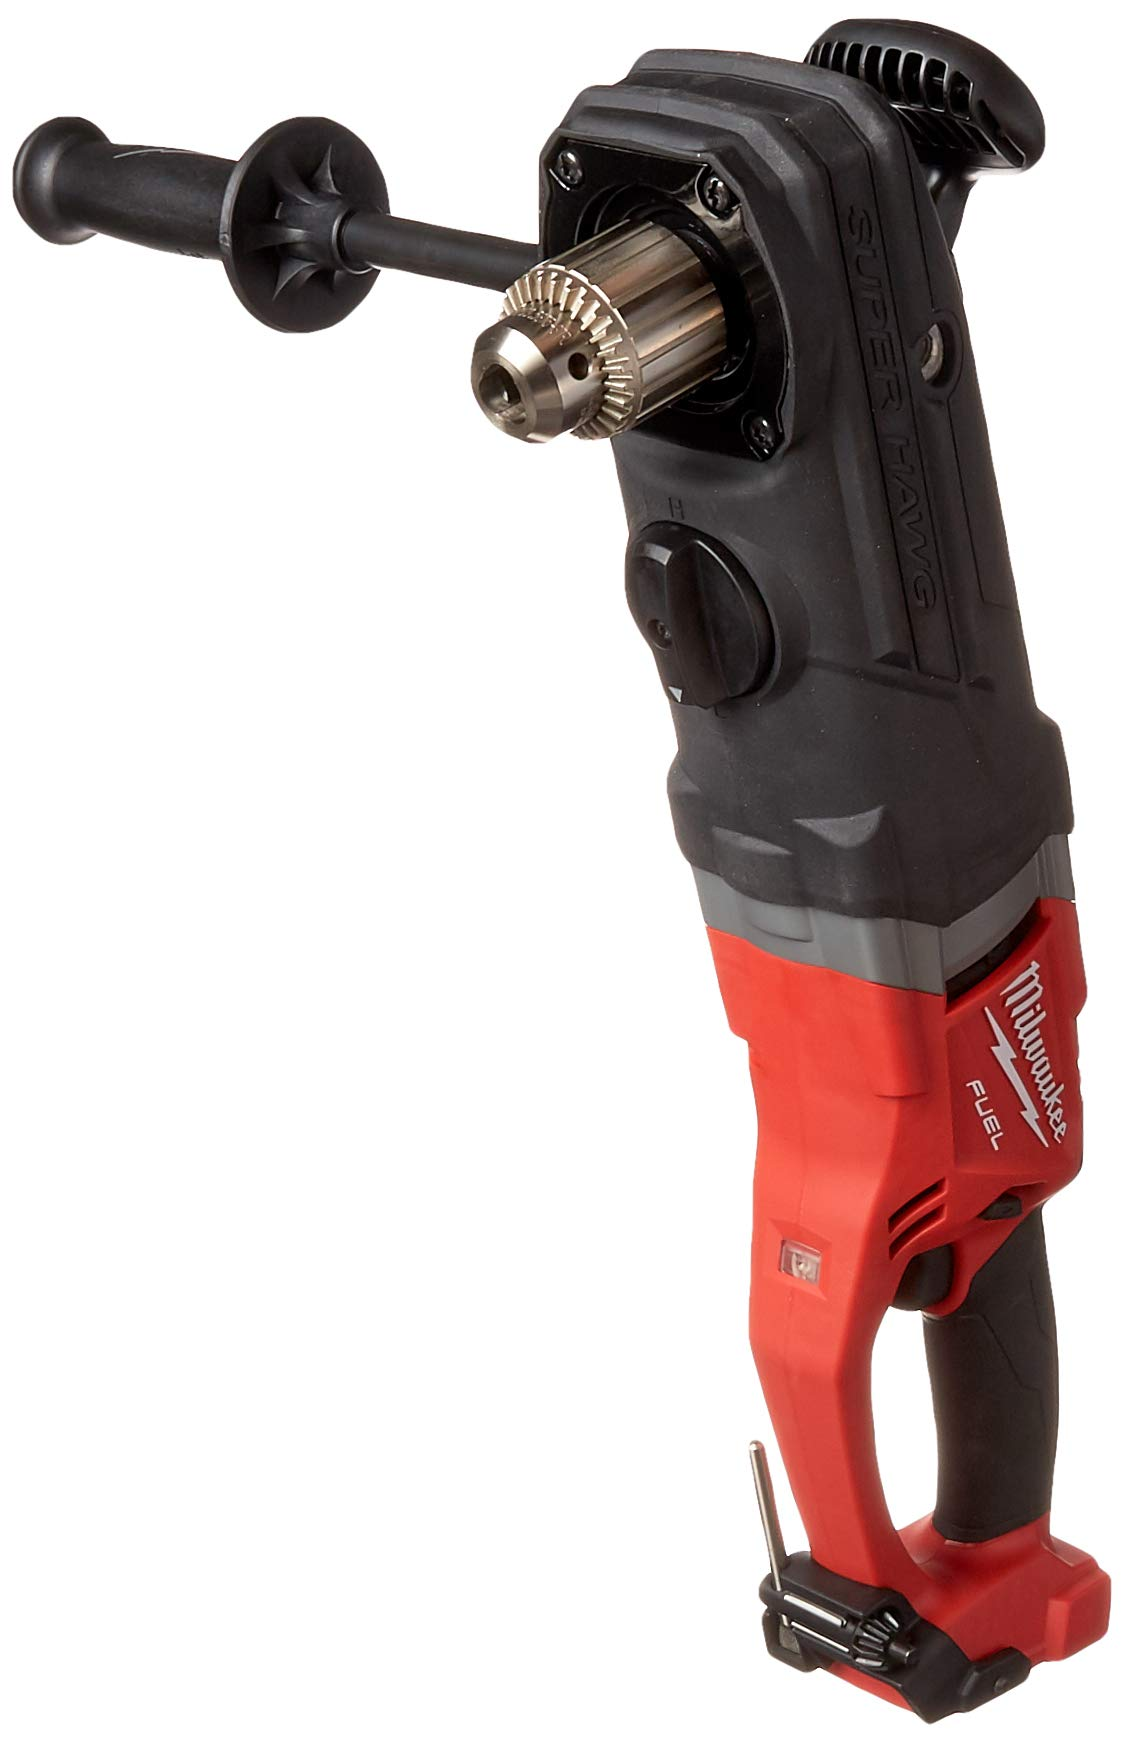 Milwaukee 2709-20 M18 Fuel Super Hawg 1/2'' Right Angle Drill Bare by Milwaukee